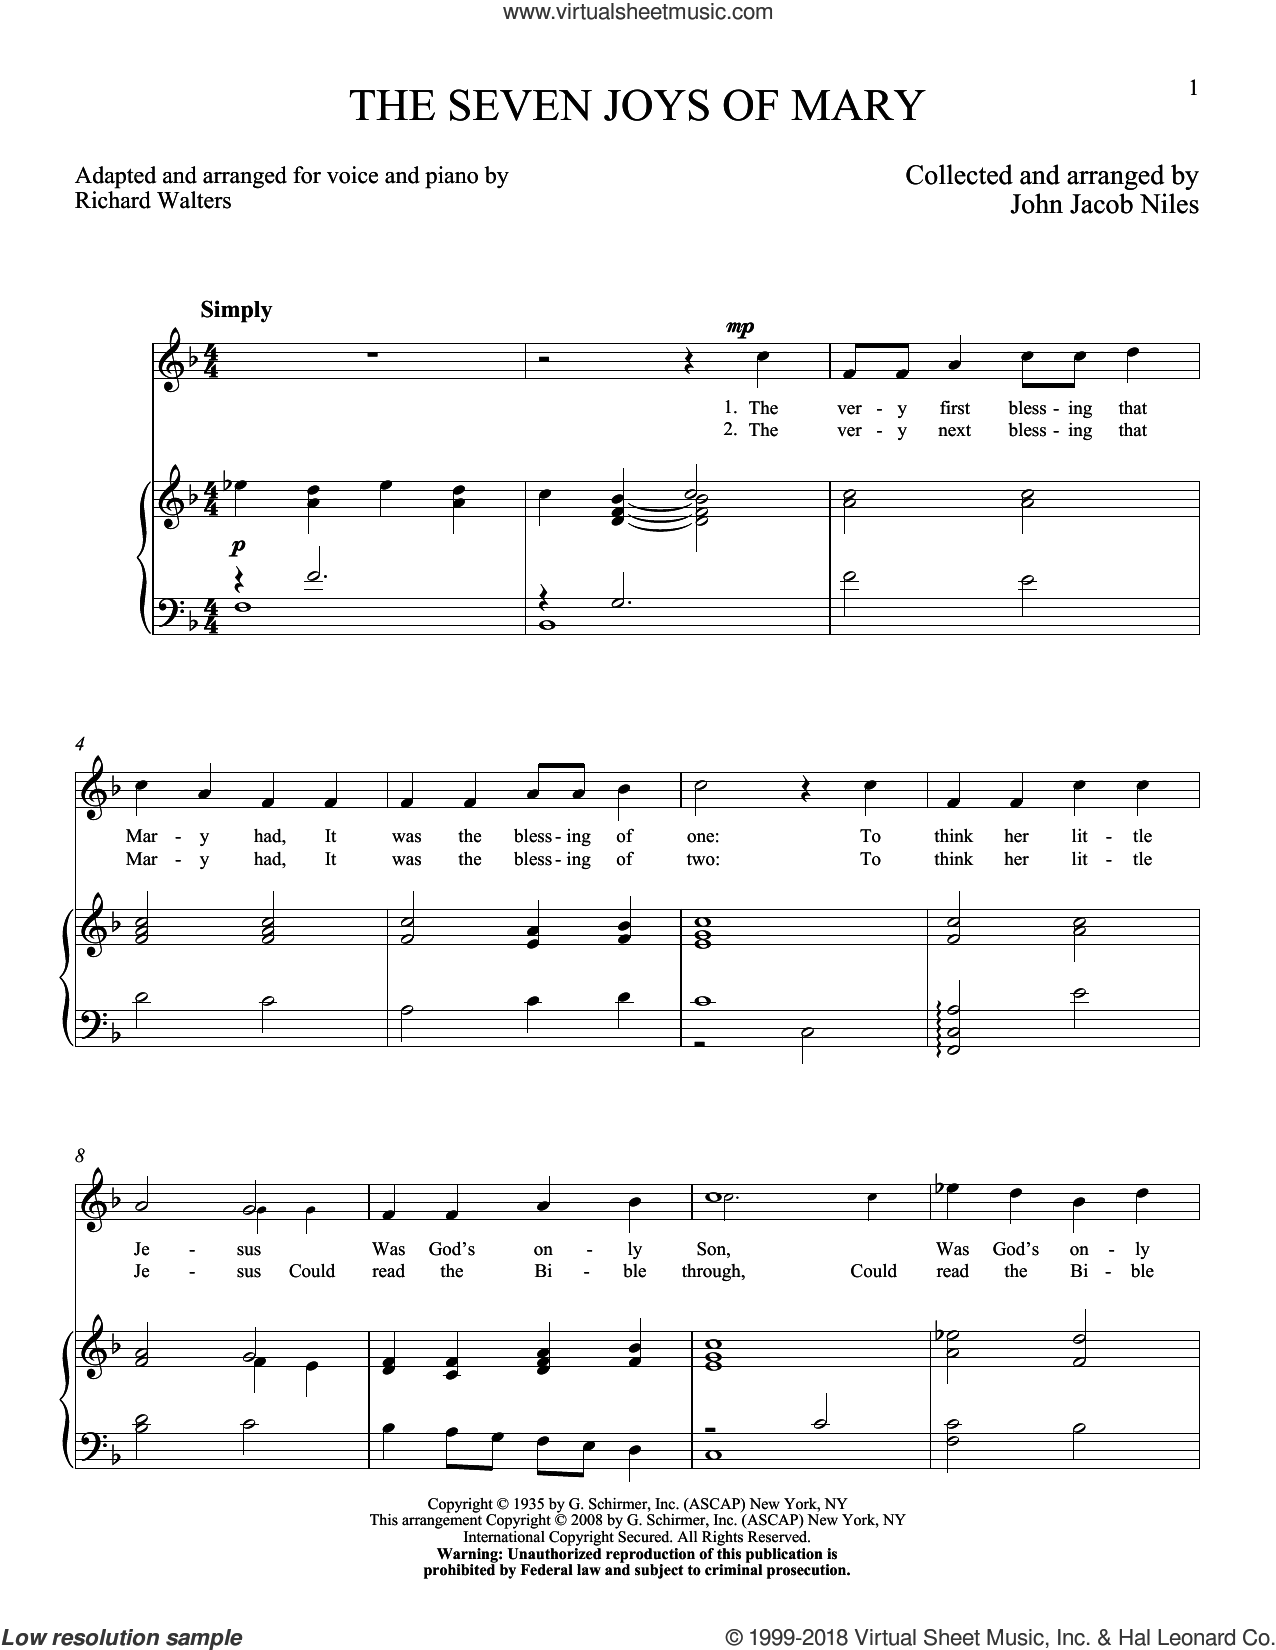 The Seven Joys Of Mary sheet music for voice and piano (High Voice) by John Jacob Niles, intermediate skill level